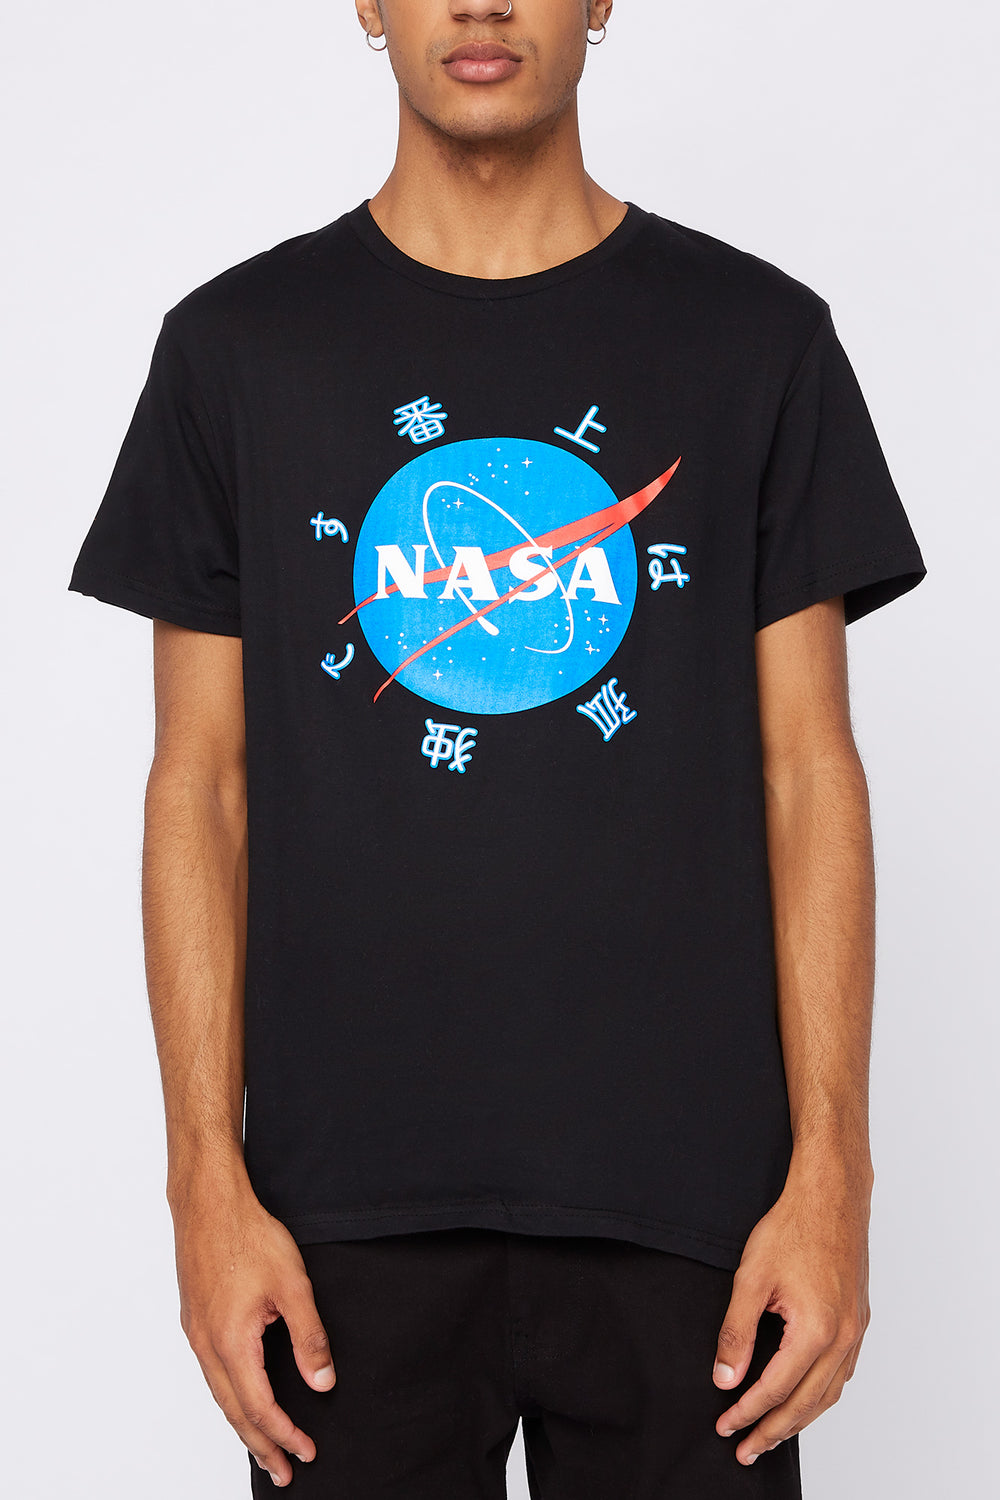 NASA Mens T-Shirt Black